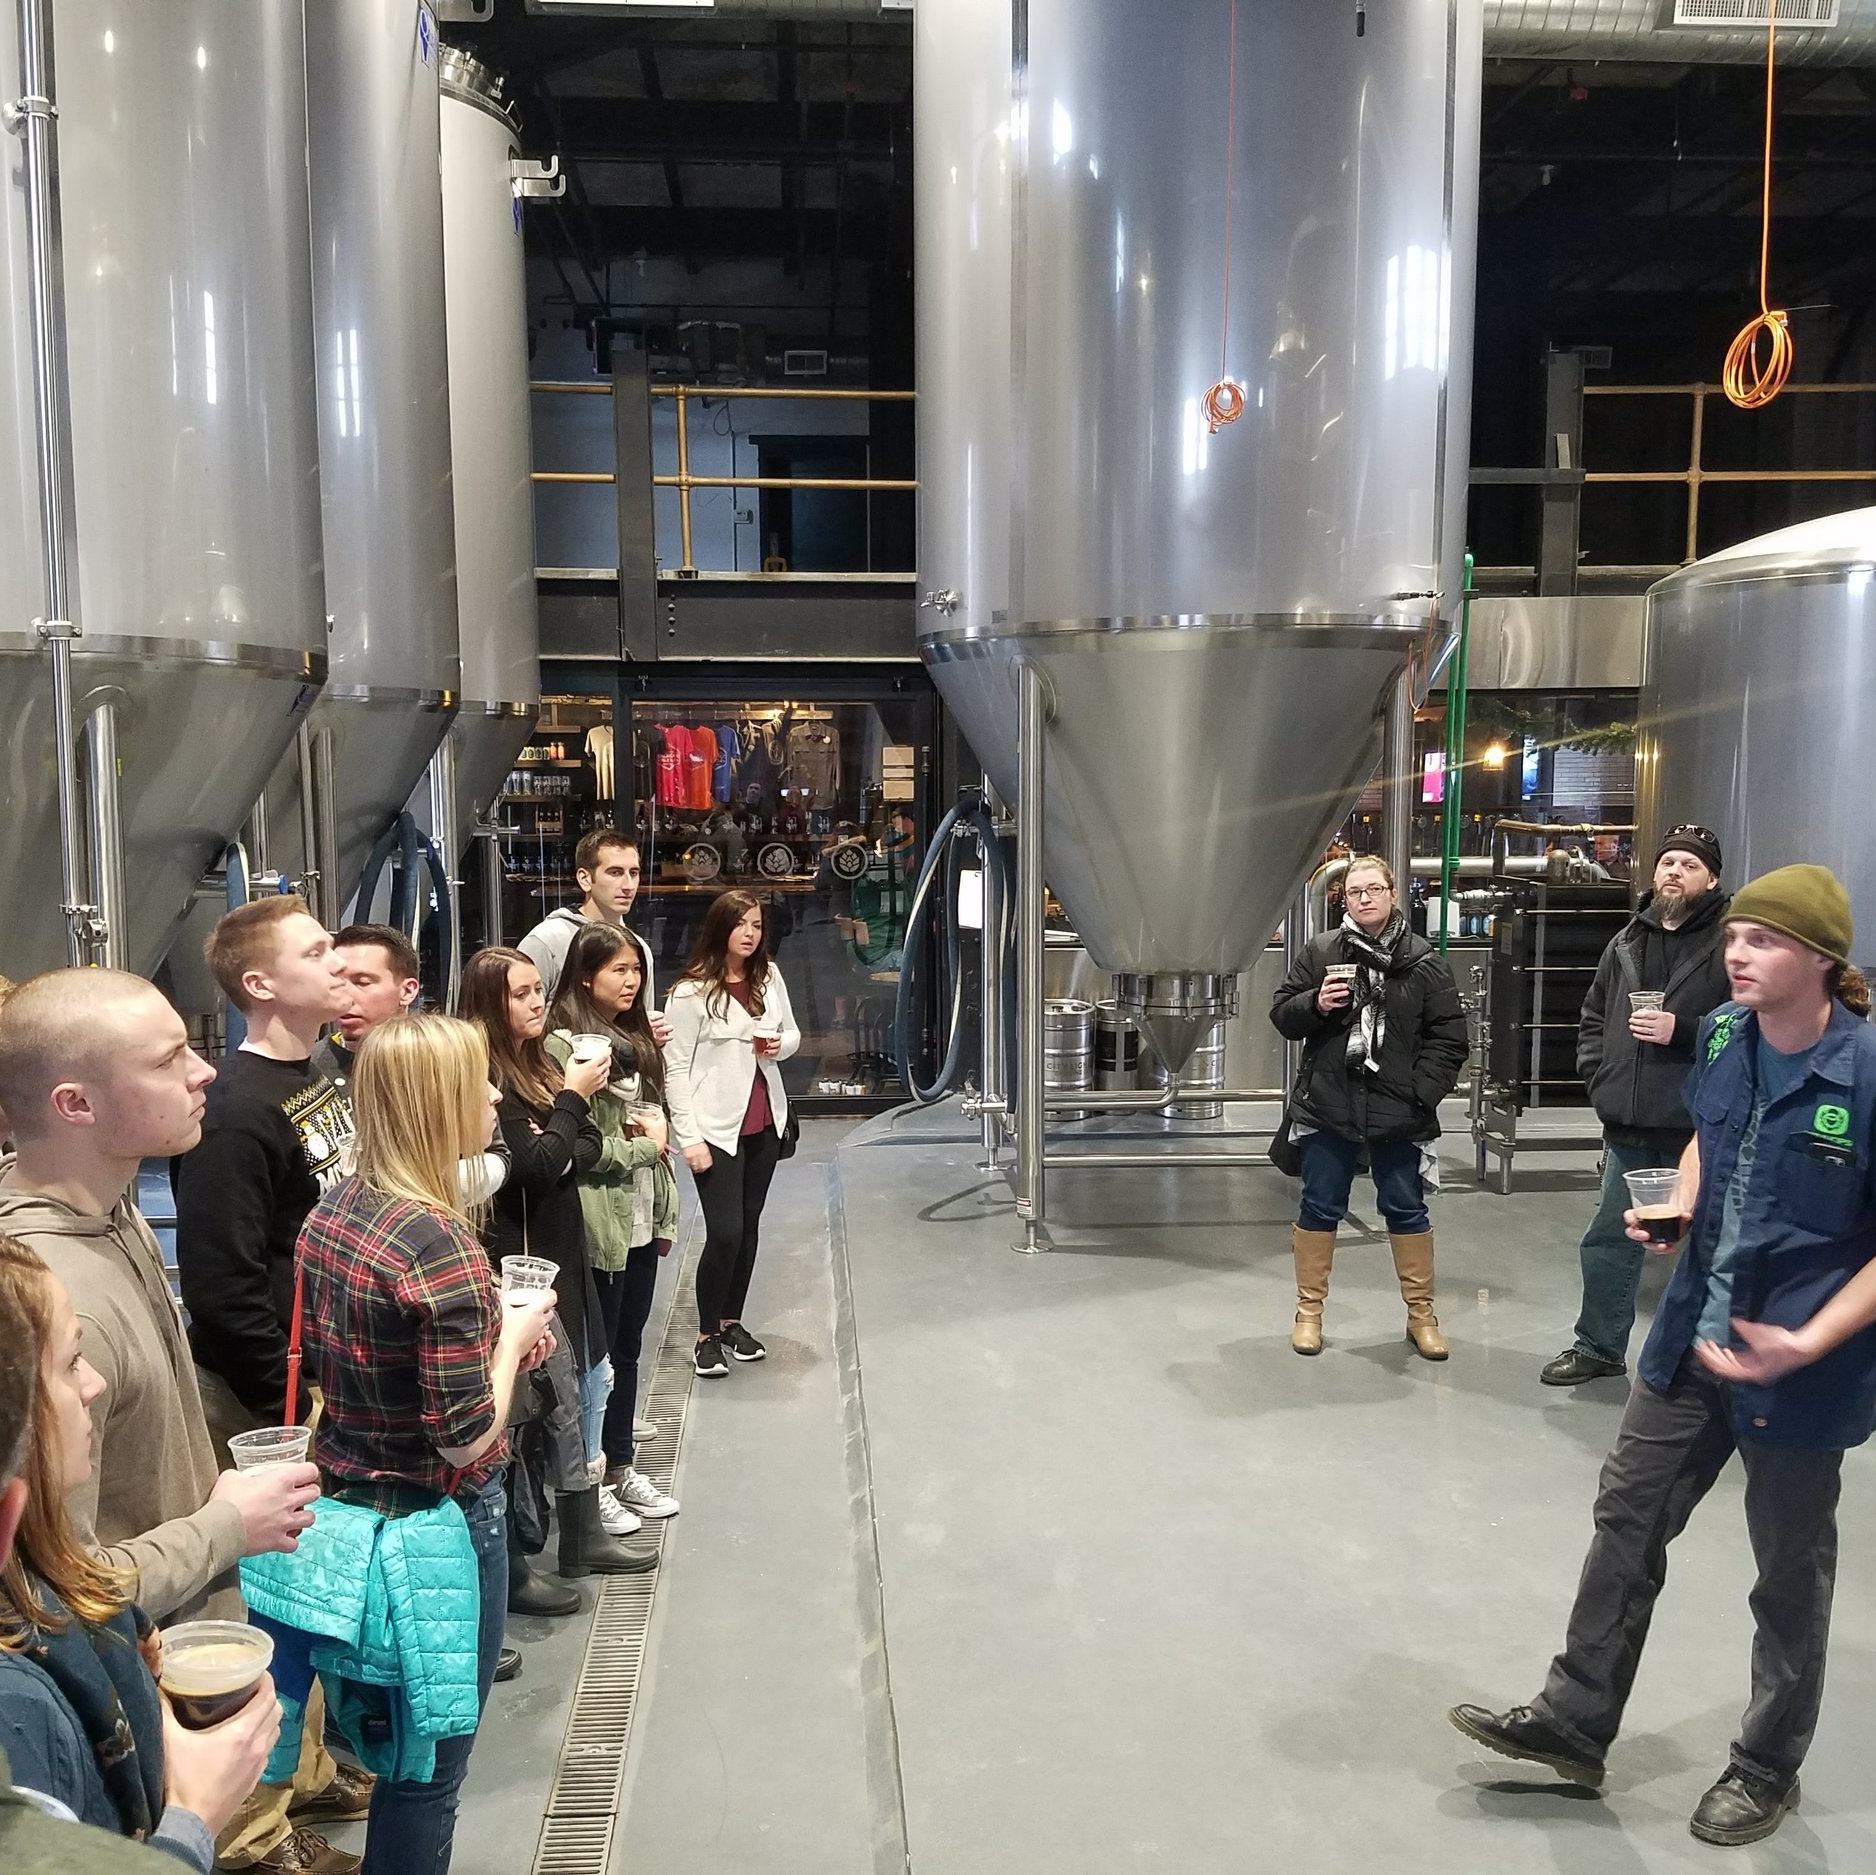 City Lights Brewing - With buildings designed by the famous Alexander Eschweiler, the first steel exported from Pennsylvania by Andrew Carnegie and brickwork hand-glazed by Tiffany; the City Lights tour will amaze, educate and delight you.